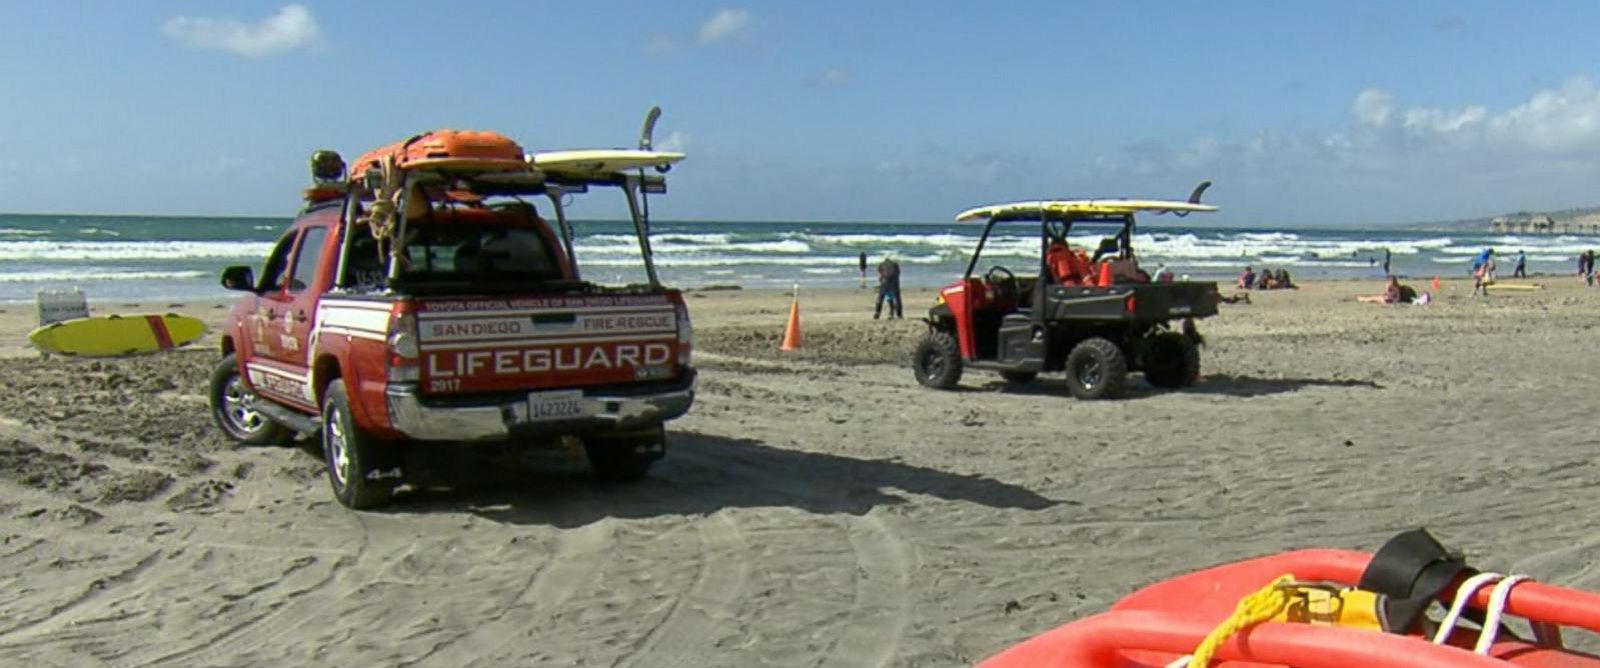 PHOTO: At least 20 students from Rancho Verde High School in Moreno Valley were rescued March 29, 2016 from the waters off the coast of La Jolla, according to the San Diego Fire-Rescue Department.